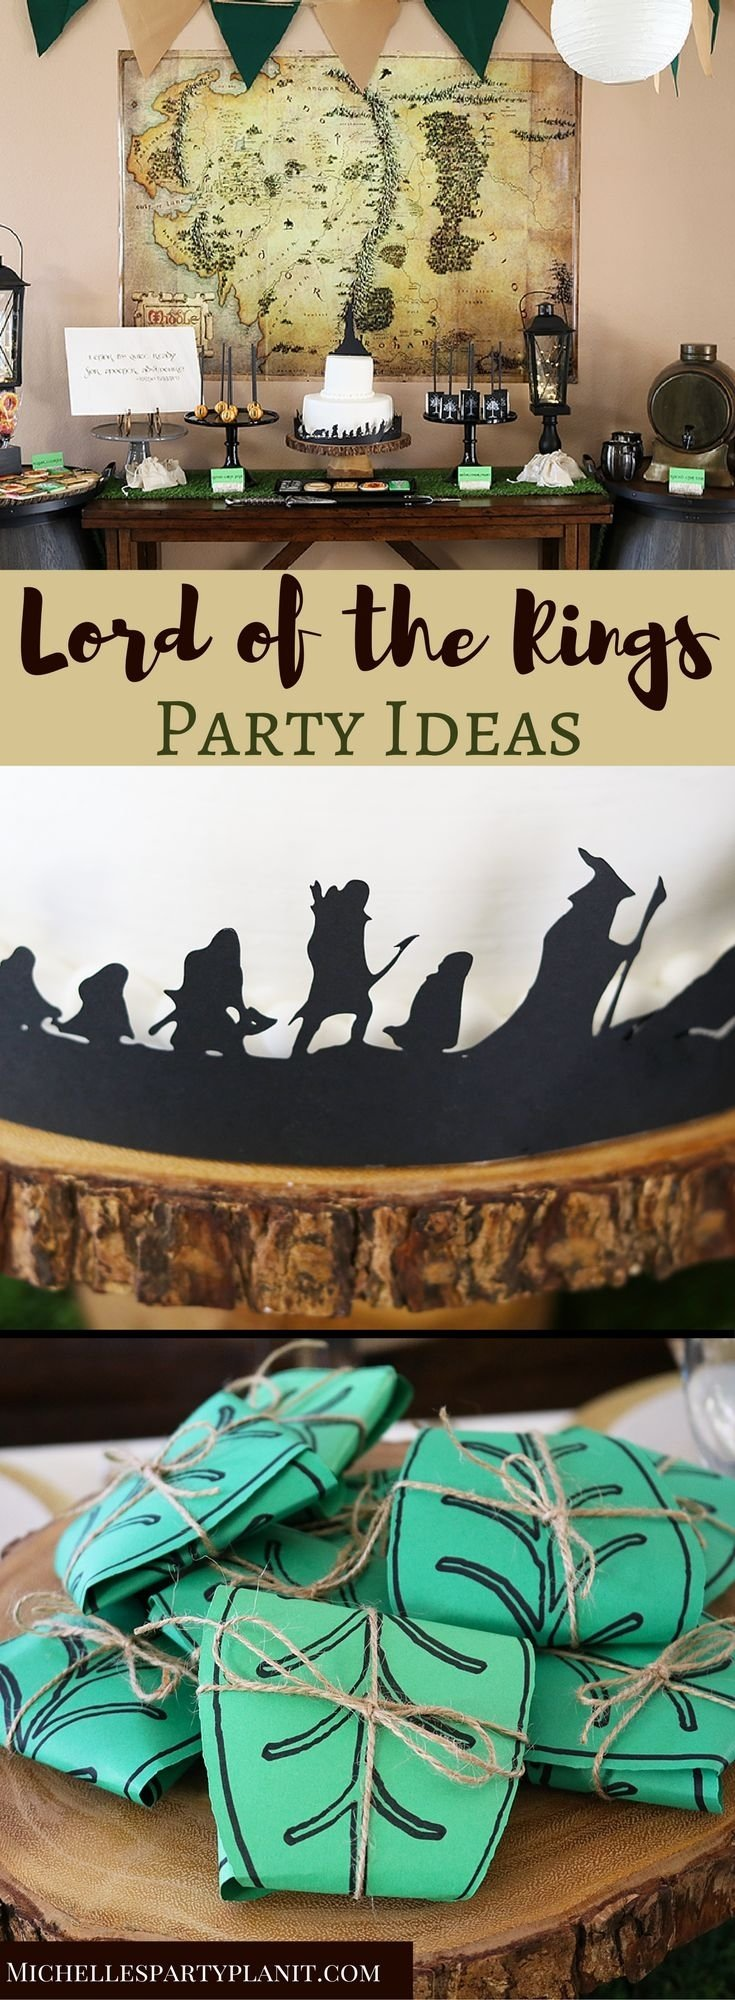 10 Pretty Lord Of The Rings Party Ideas 47 best geeky party hobbit theme images on pinterest hobbit party 2020